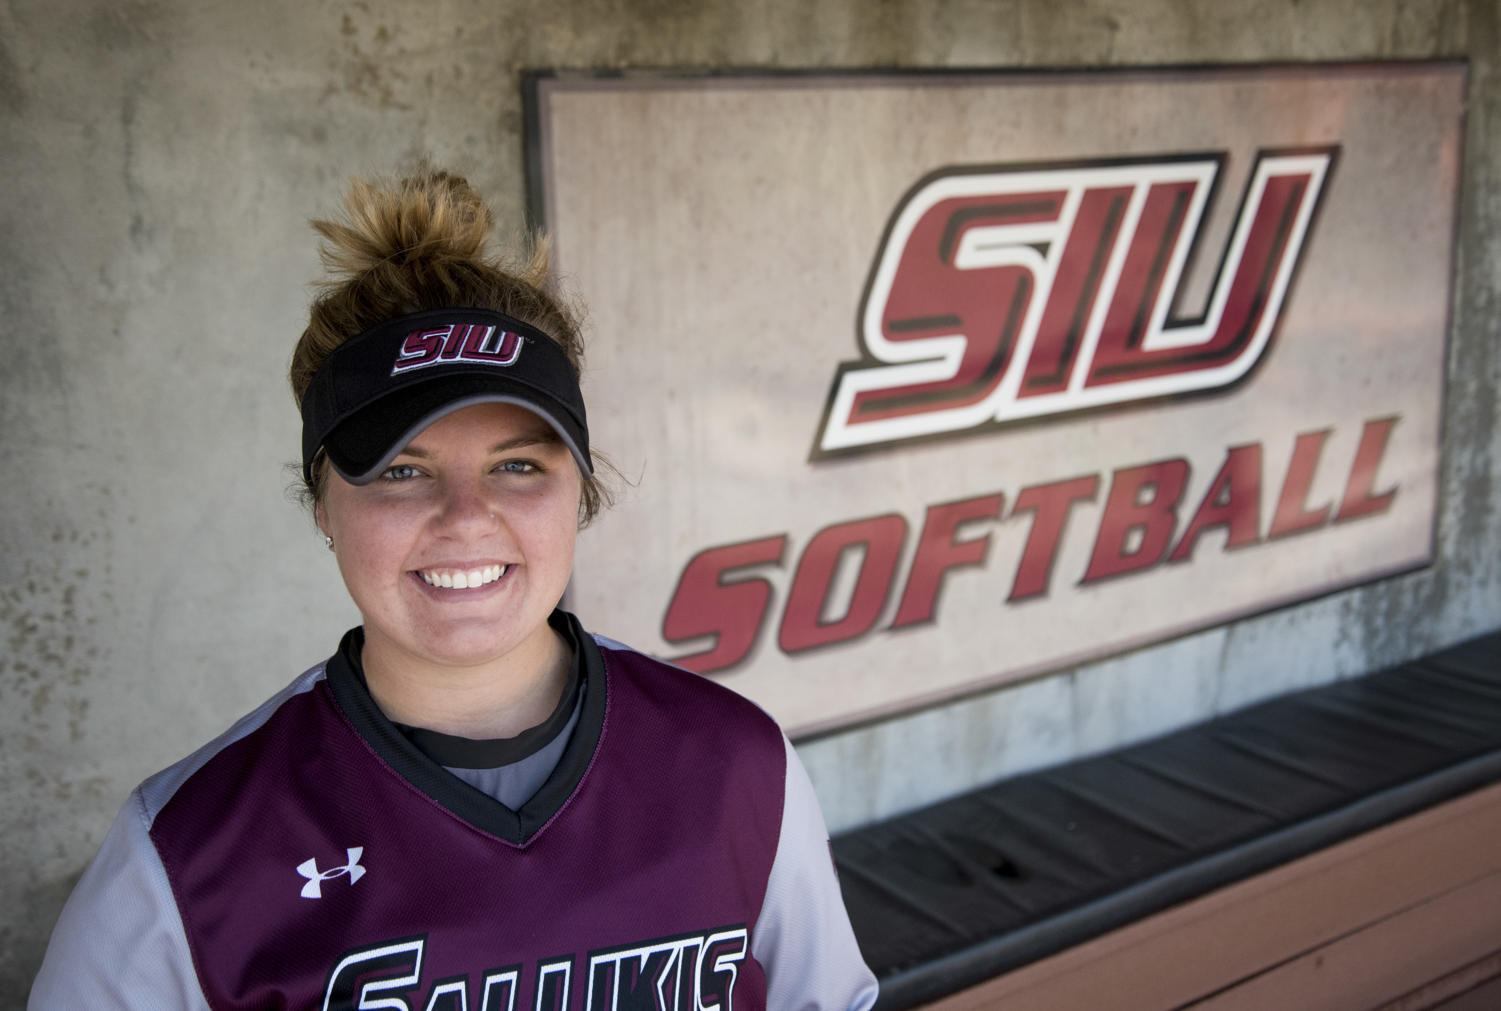 Junior pitcher Brianna Jones poses for a portrait on Thursday, April 12, 2018, at Charlotte West Stadium in Carbondale. Jones has taken the MVC by storm and has earned her spot near the top of starting pitchers in the conference. (Cameron Hupp | @CHupp04)